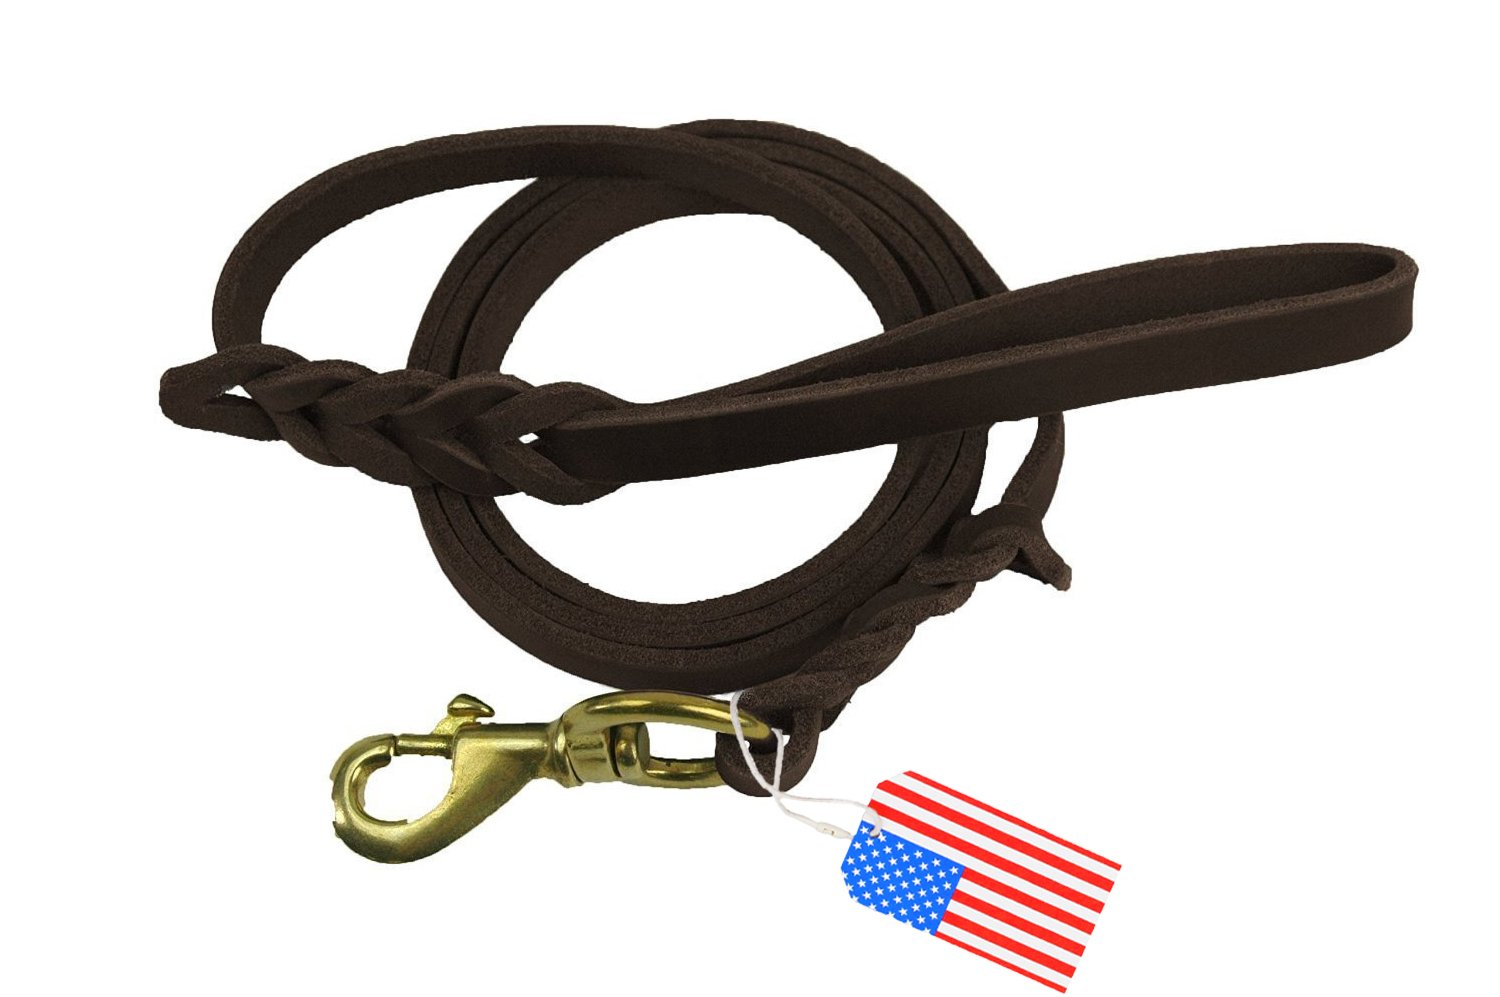 Premier 6 Foot Dog Leather Training Leash, Waist Braided Lease Leads, Made from Leather, Great Option for Large Medium Hunting Dogs or General Obedience in the Backyard by Highland Farms Select